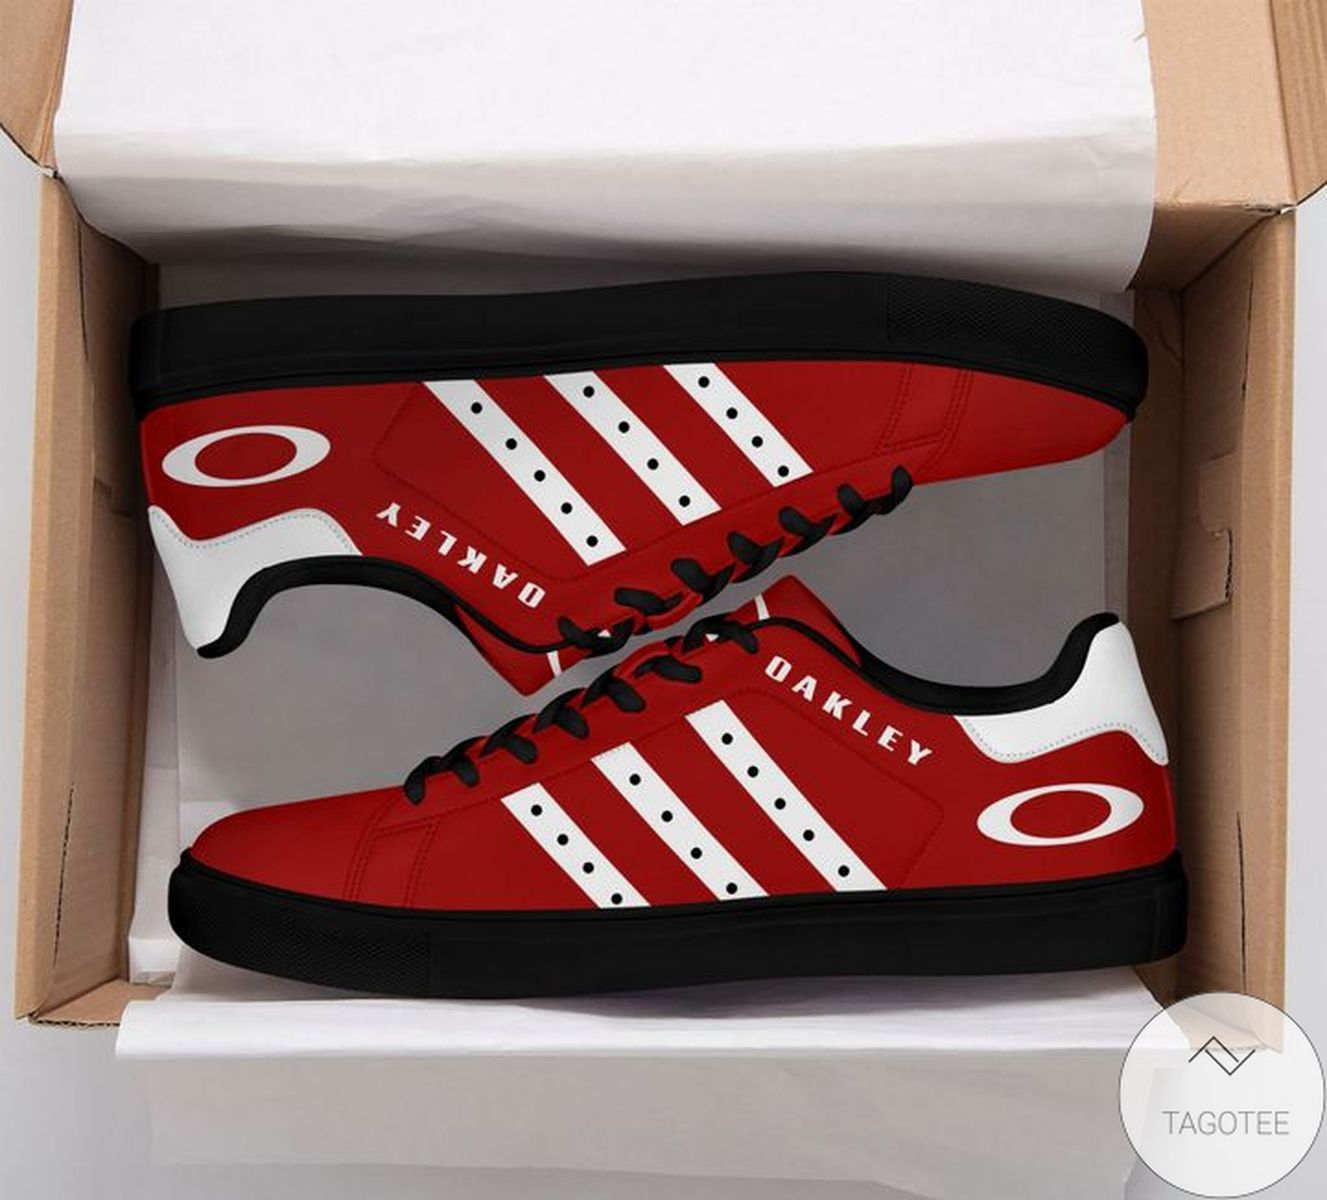 Oakley Red Stan Smith Shoes